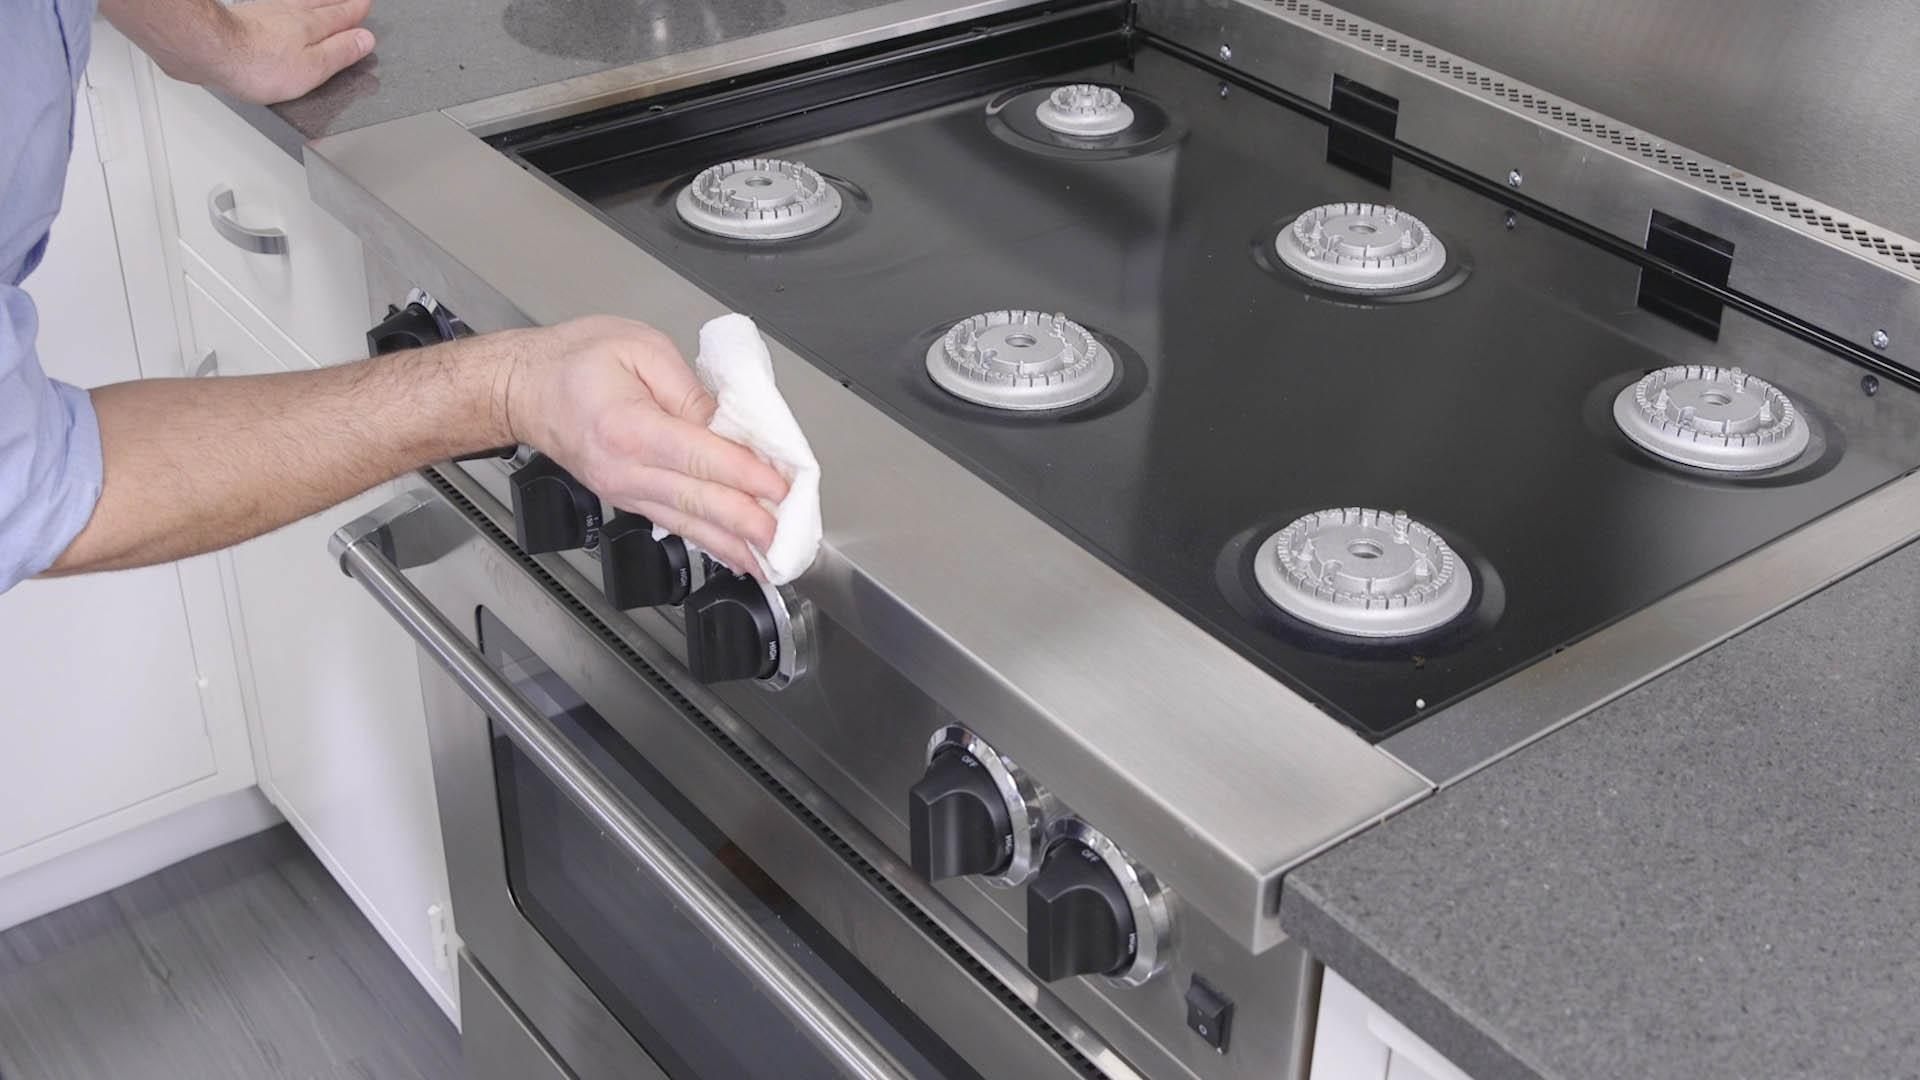 How To Clean A Dirty Oven And Grimy Stovetop Consumer